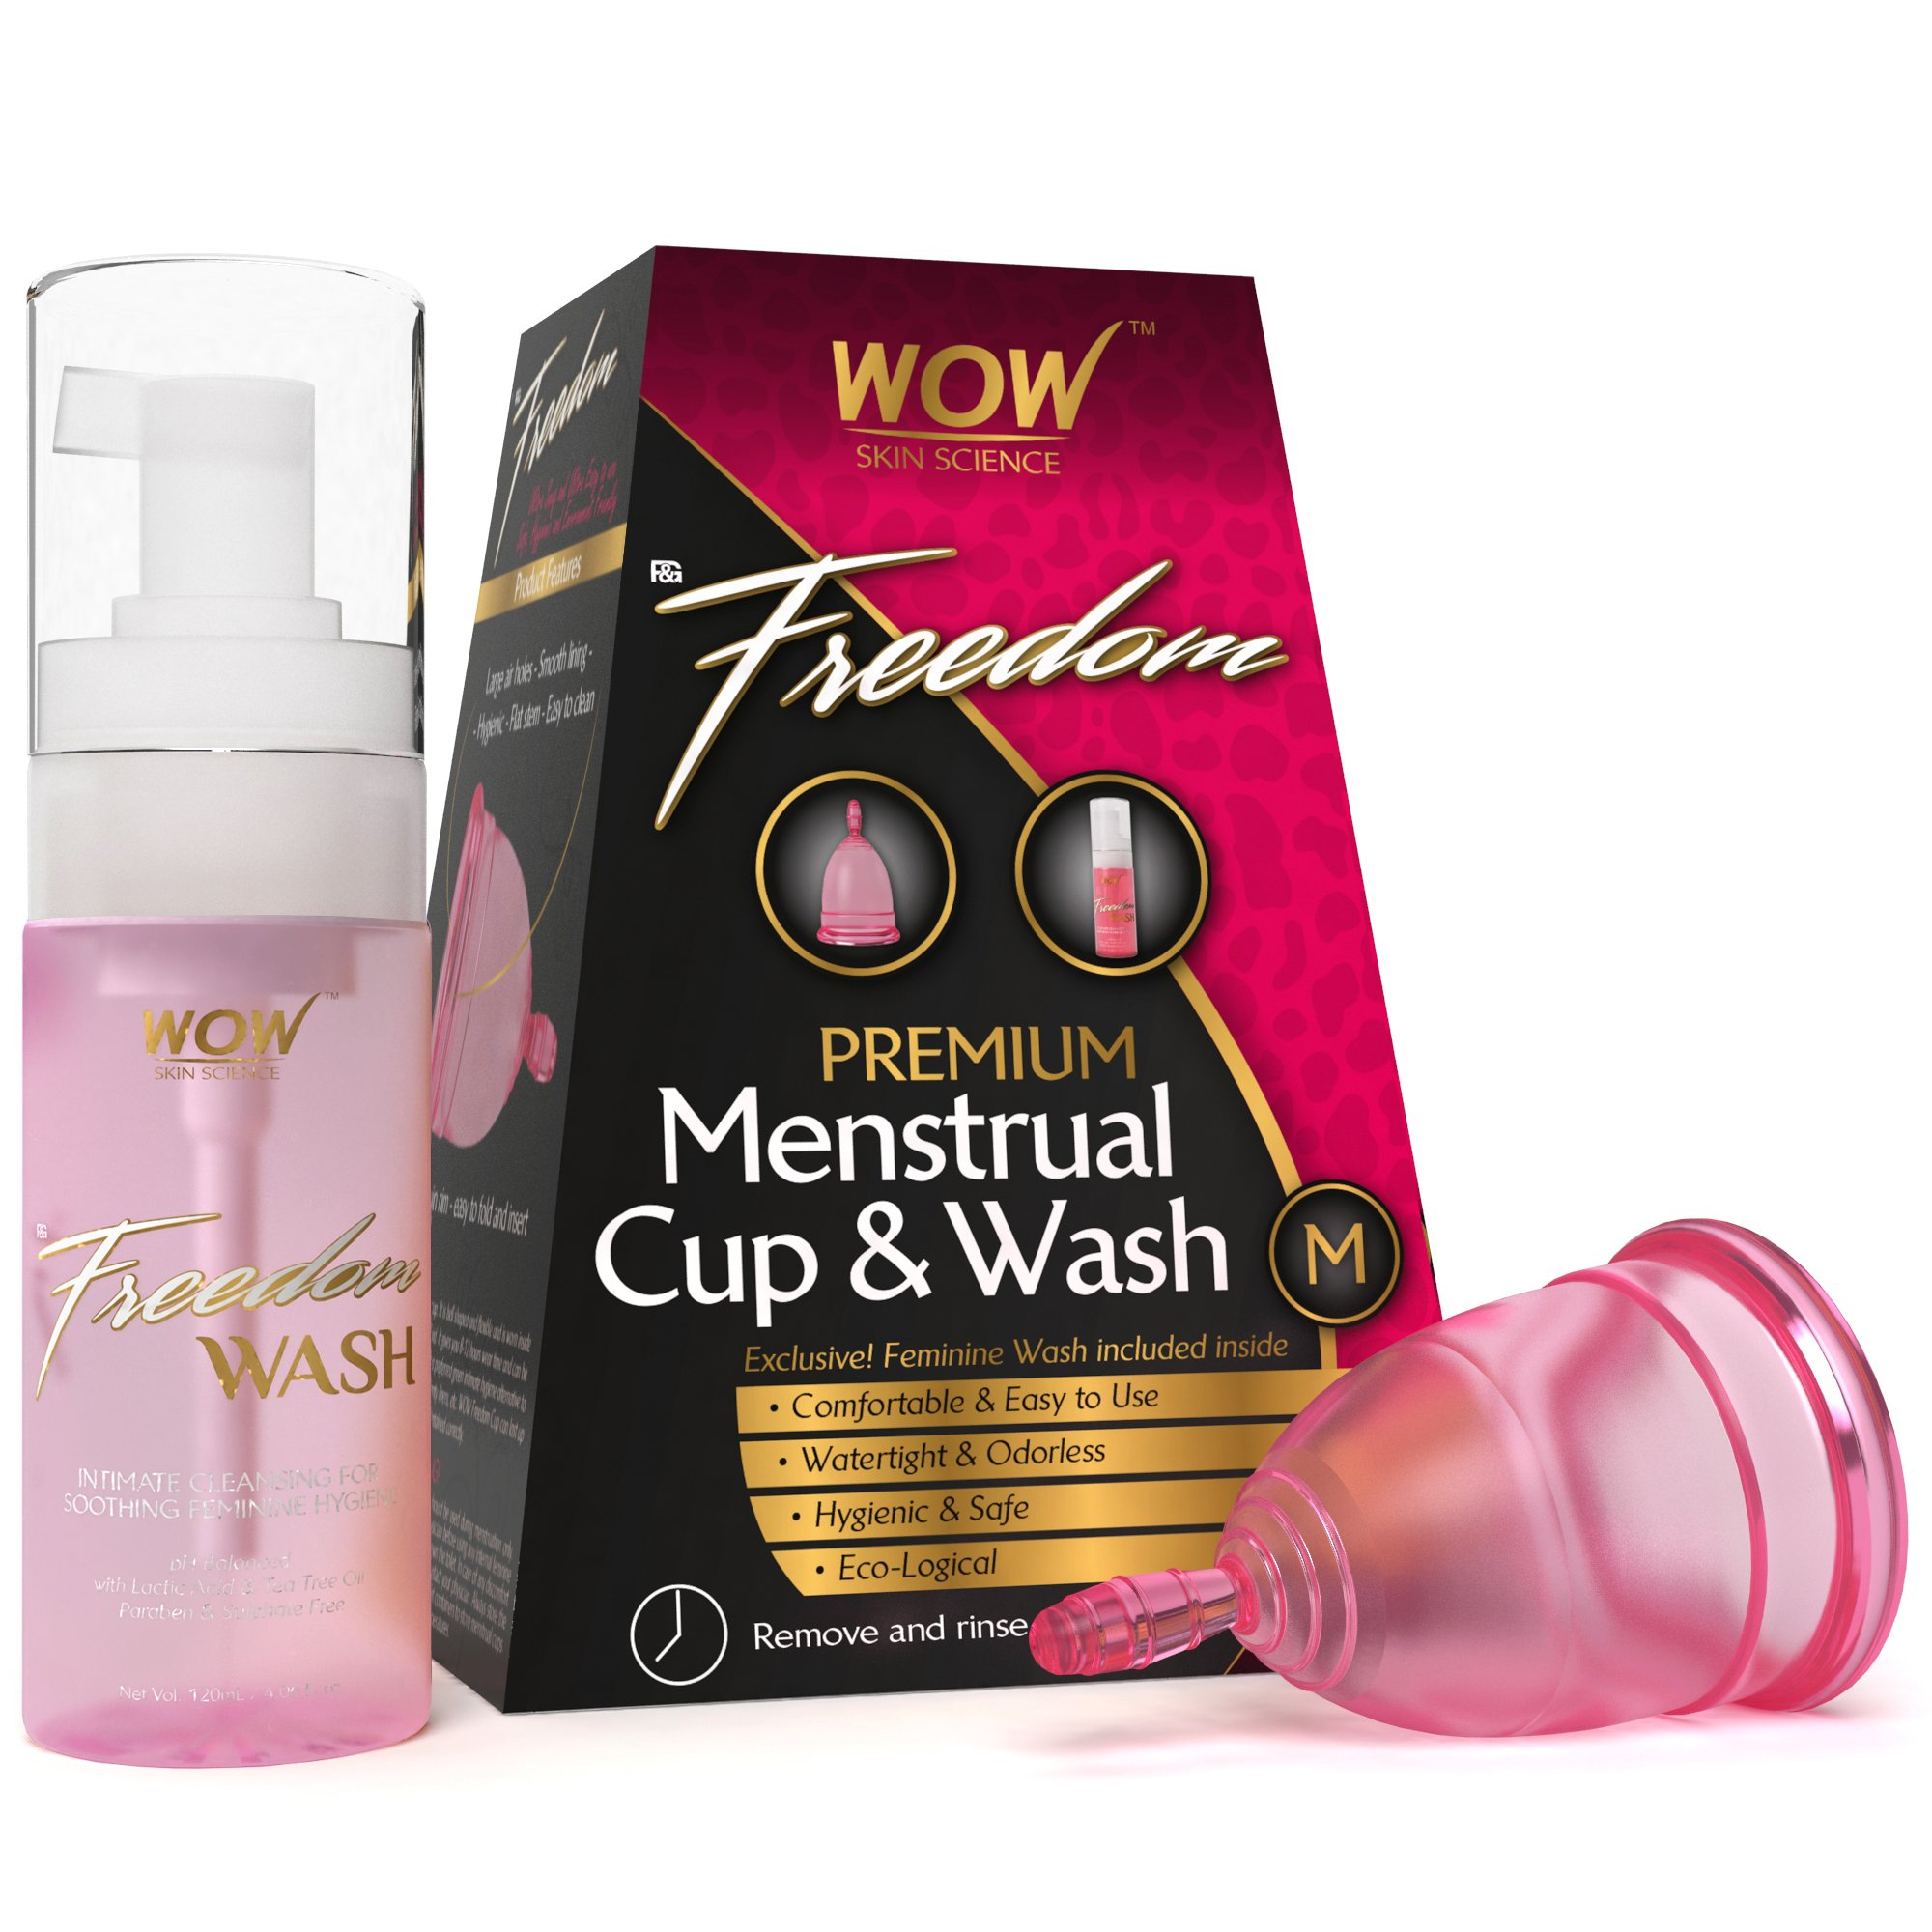 Wow Freedom Reusable Menstrual Cup and Wash Pre Childbirth - Medium (Under 30 Years) product image